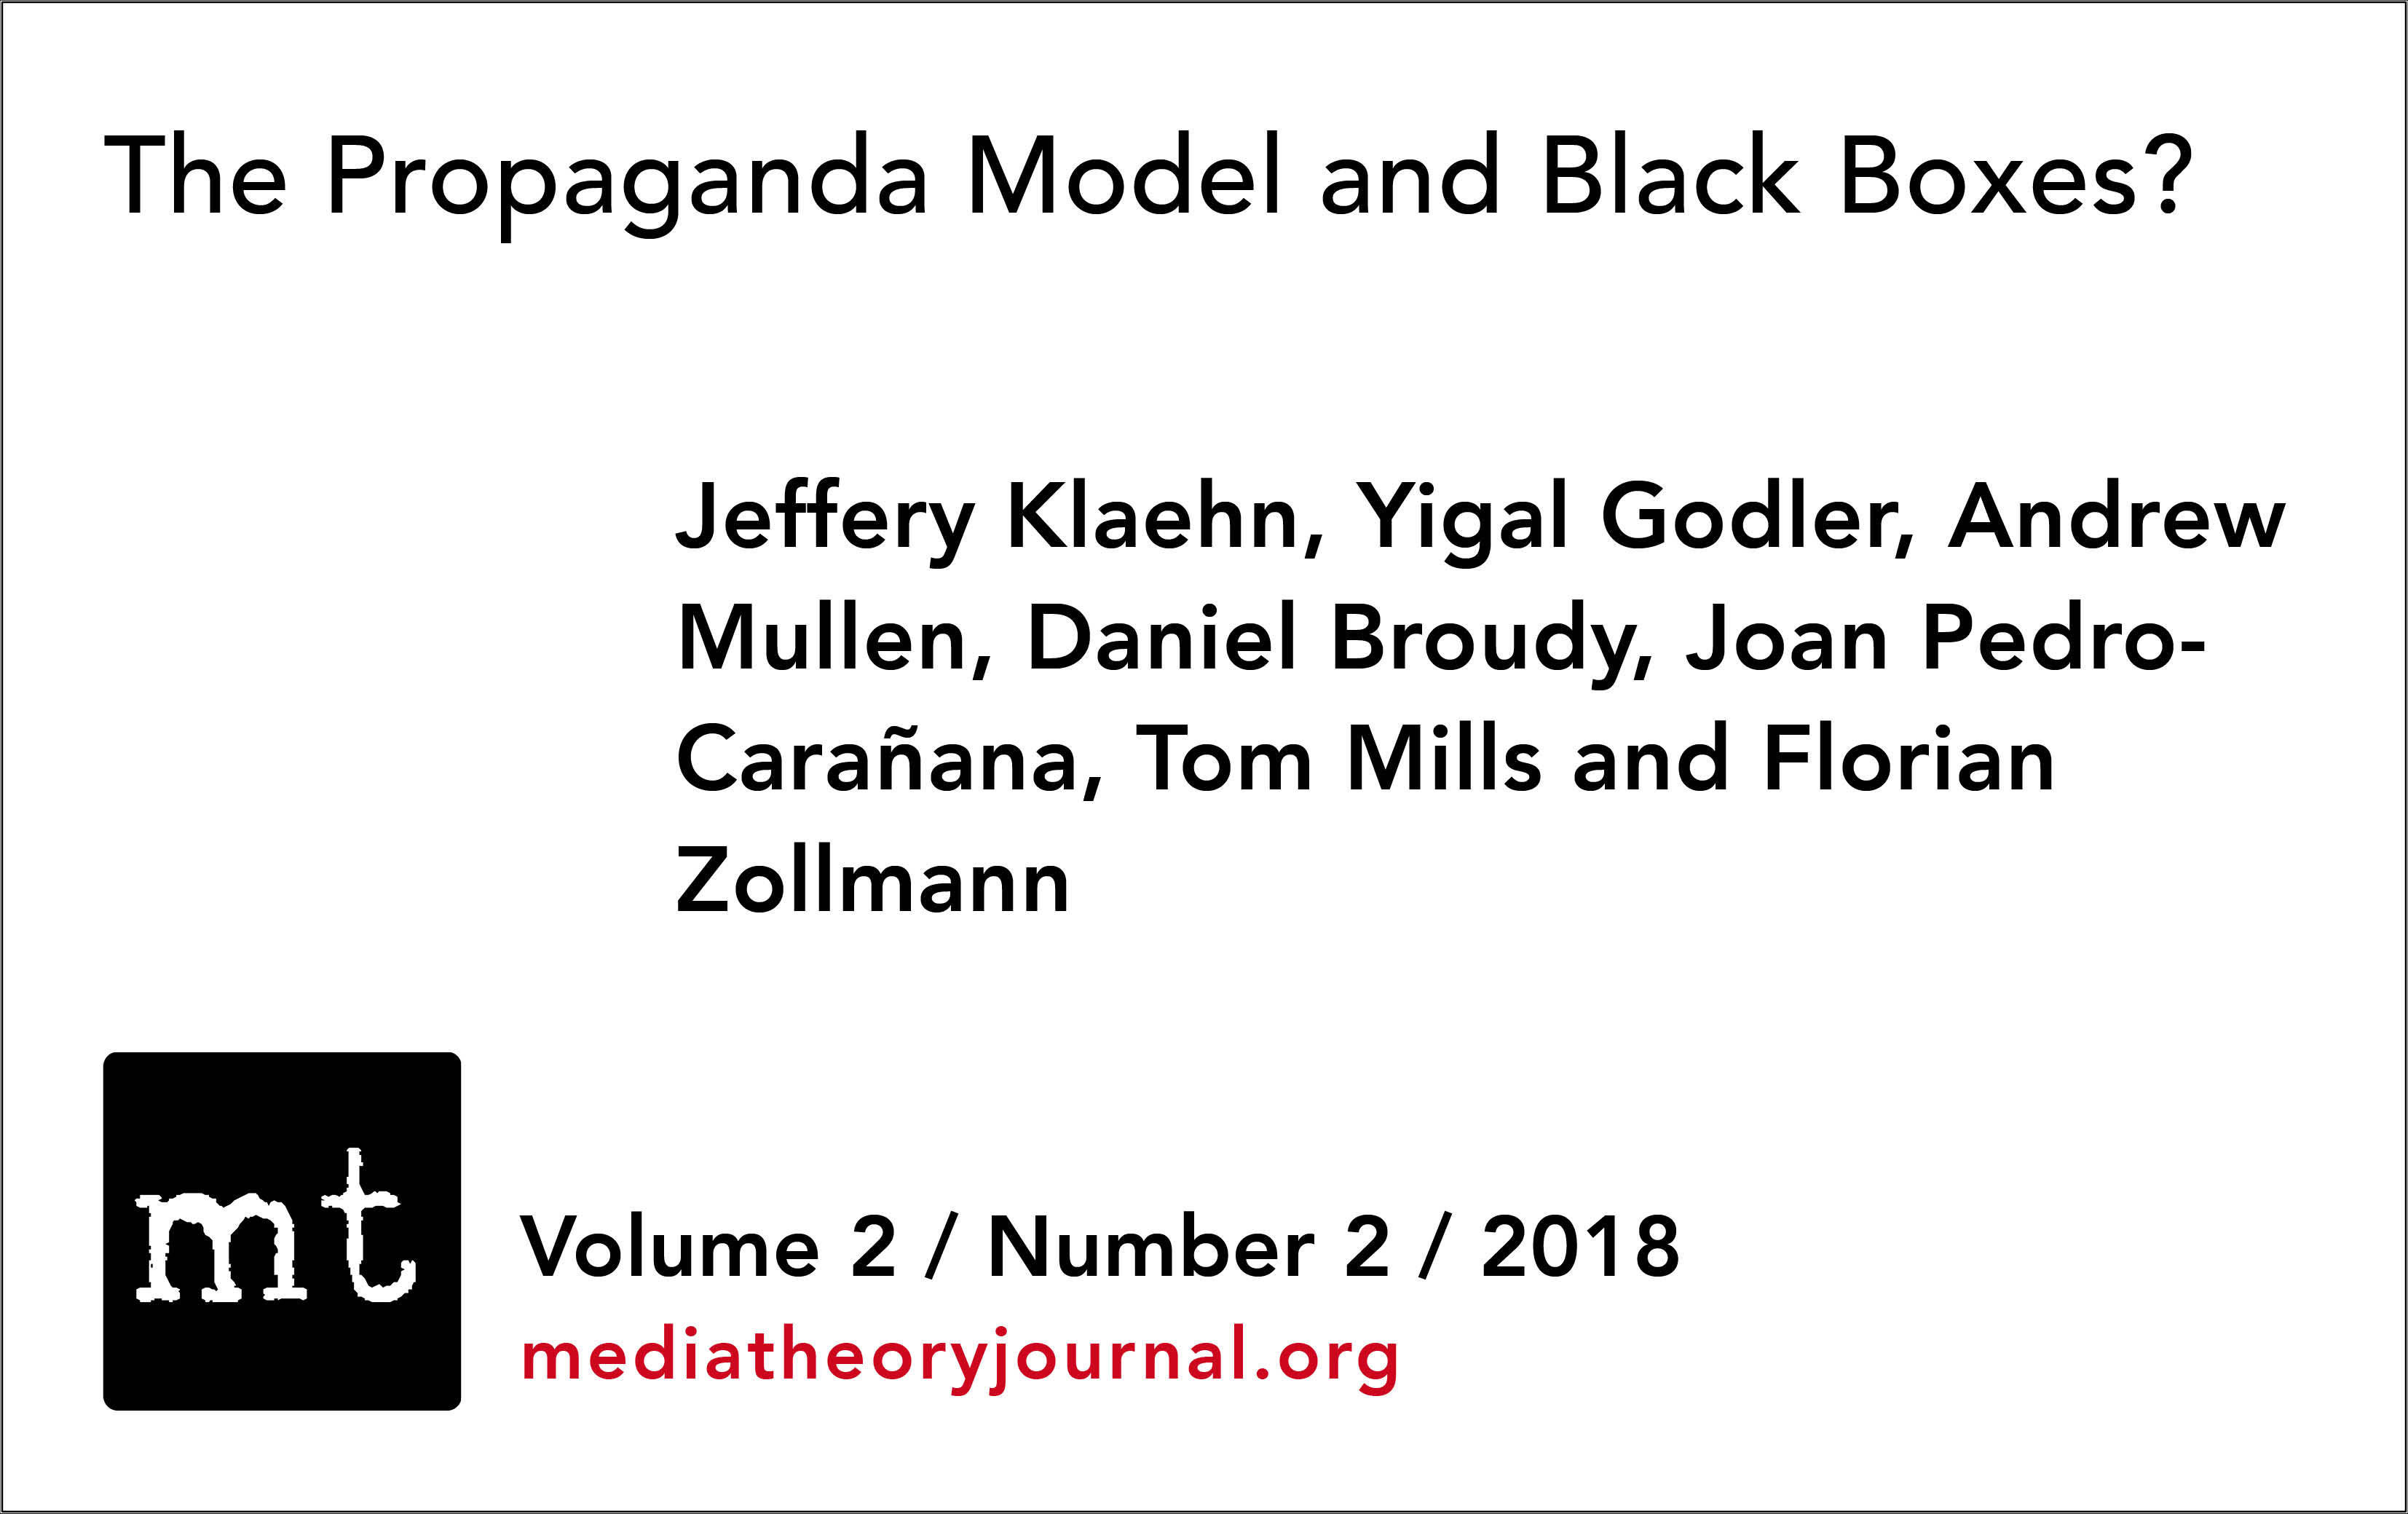 The Propaganda Model and Black Boxes? | Media Theory